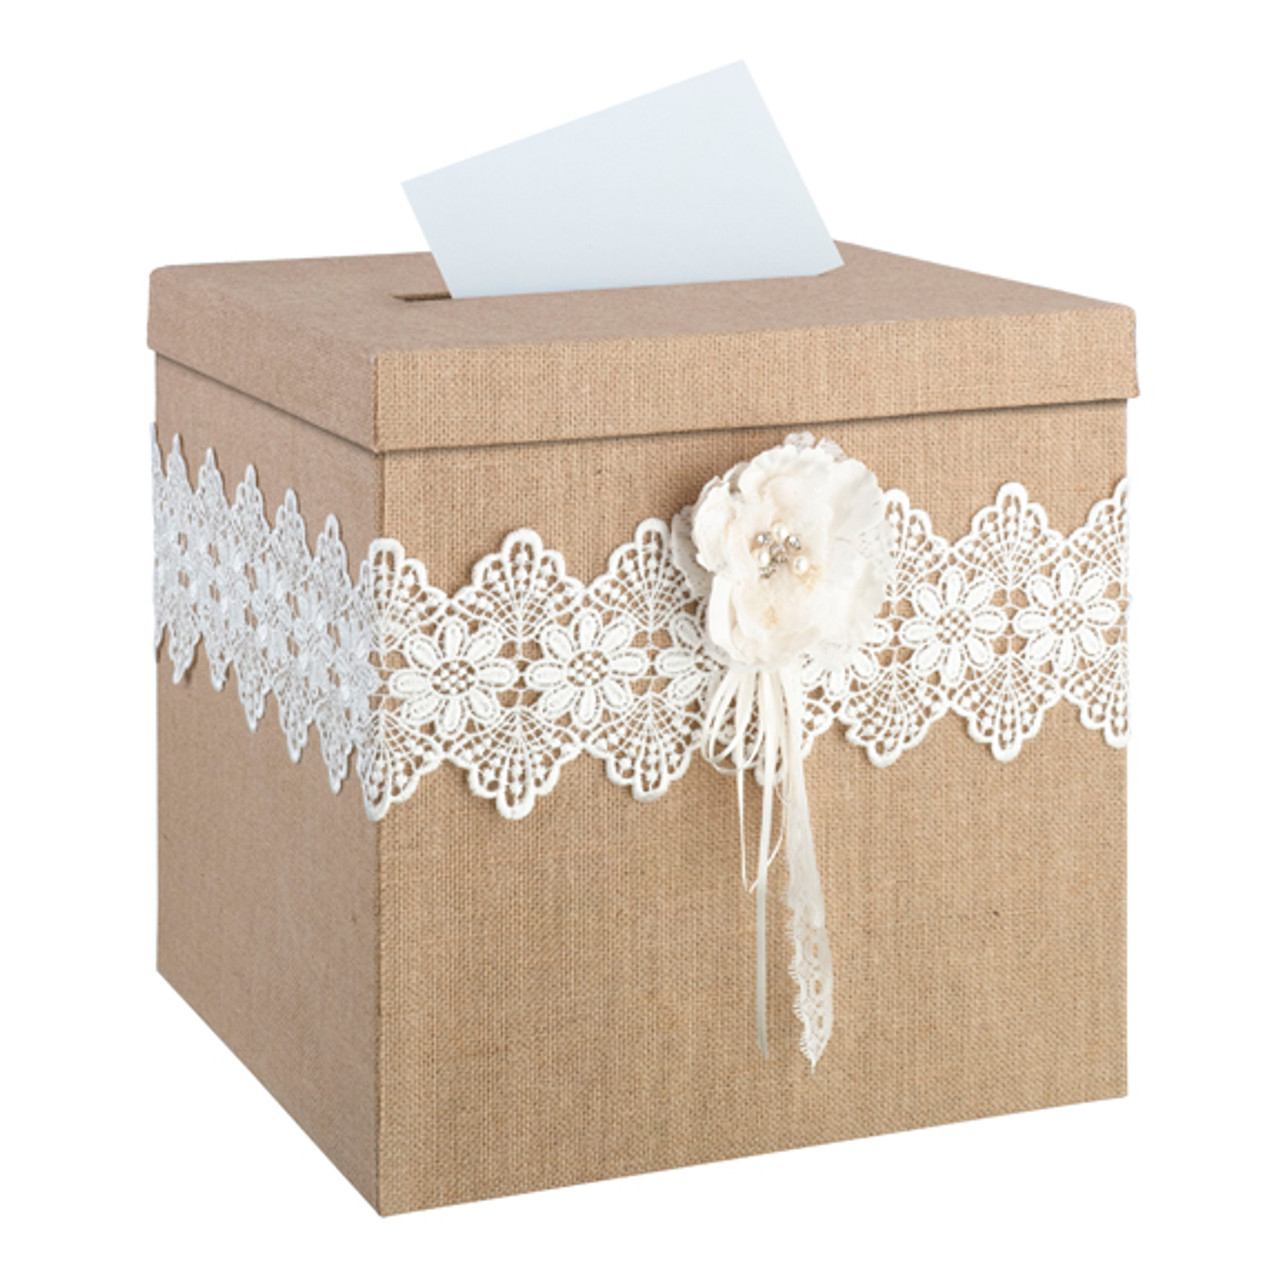 Rustic Wedding Card Box With Burlap And Lace Camokix